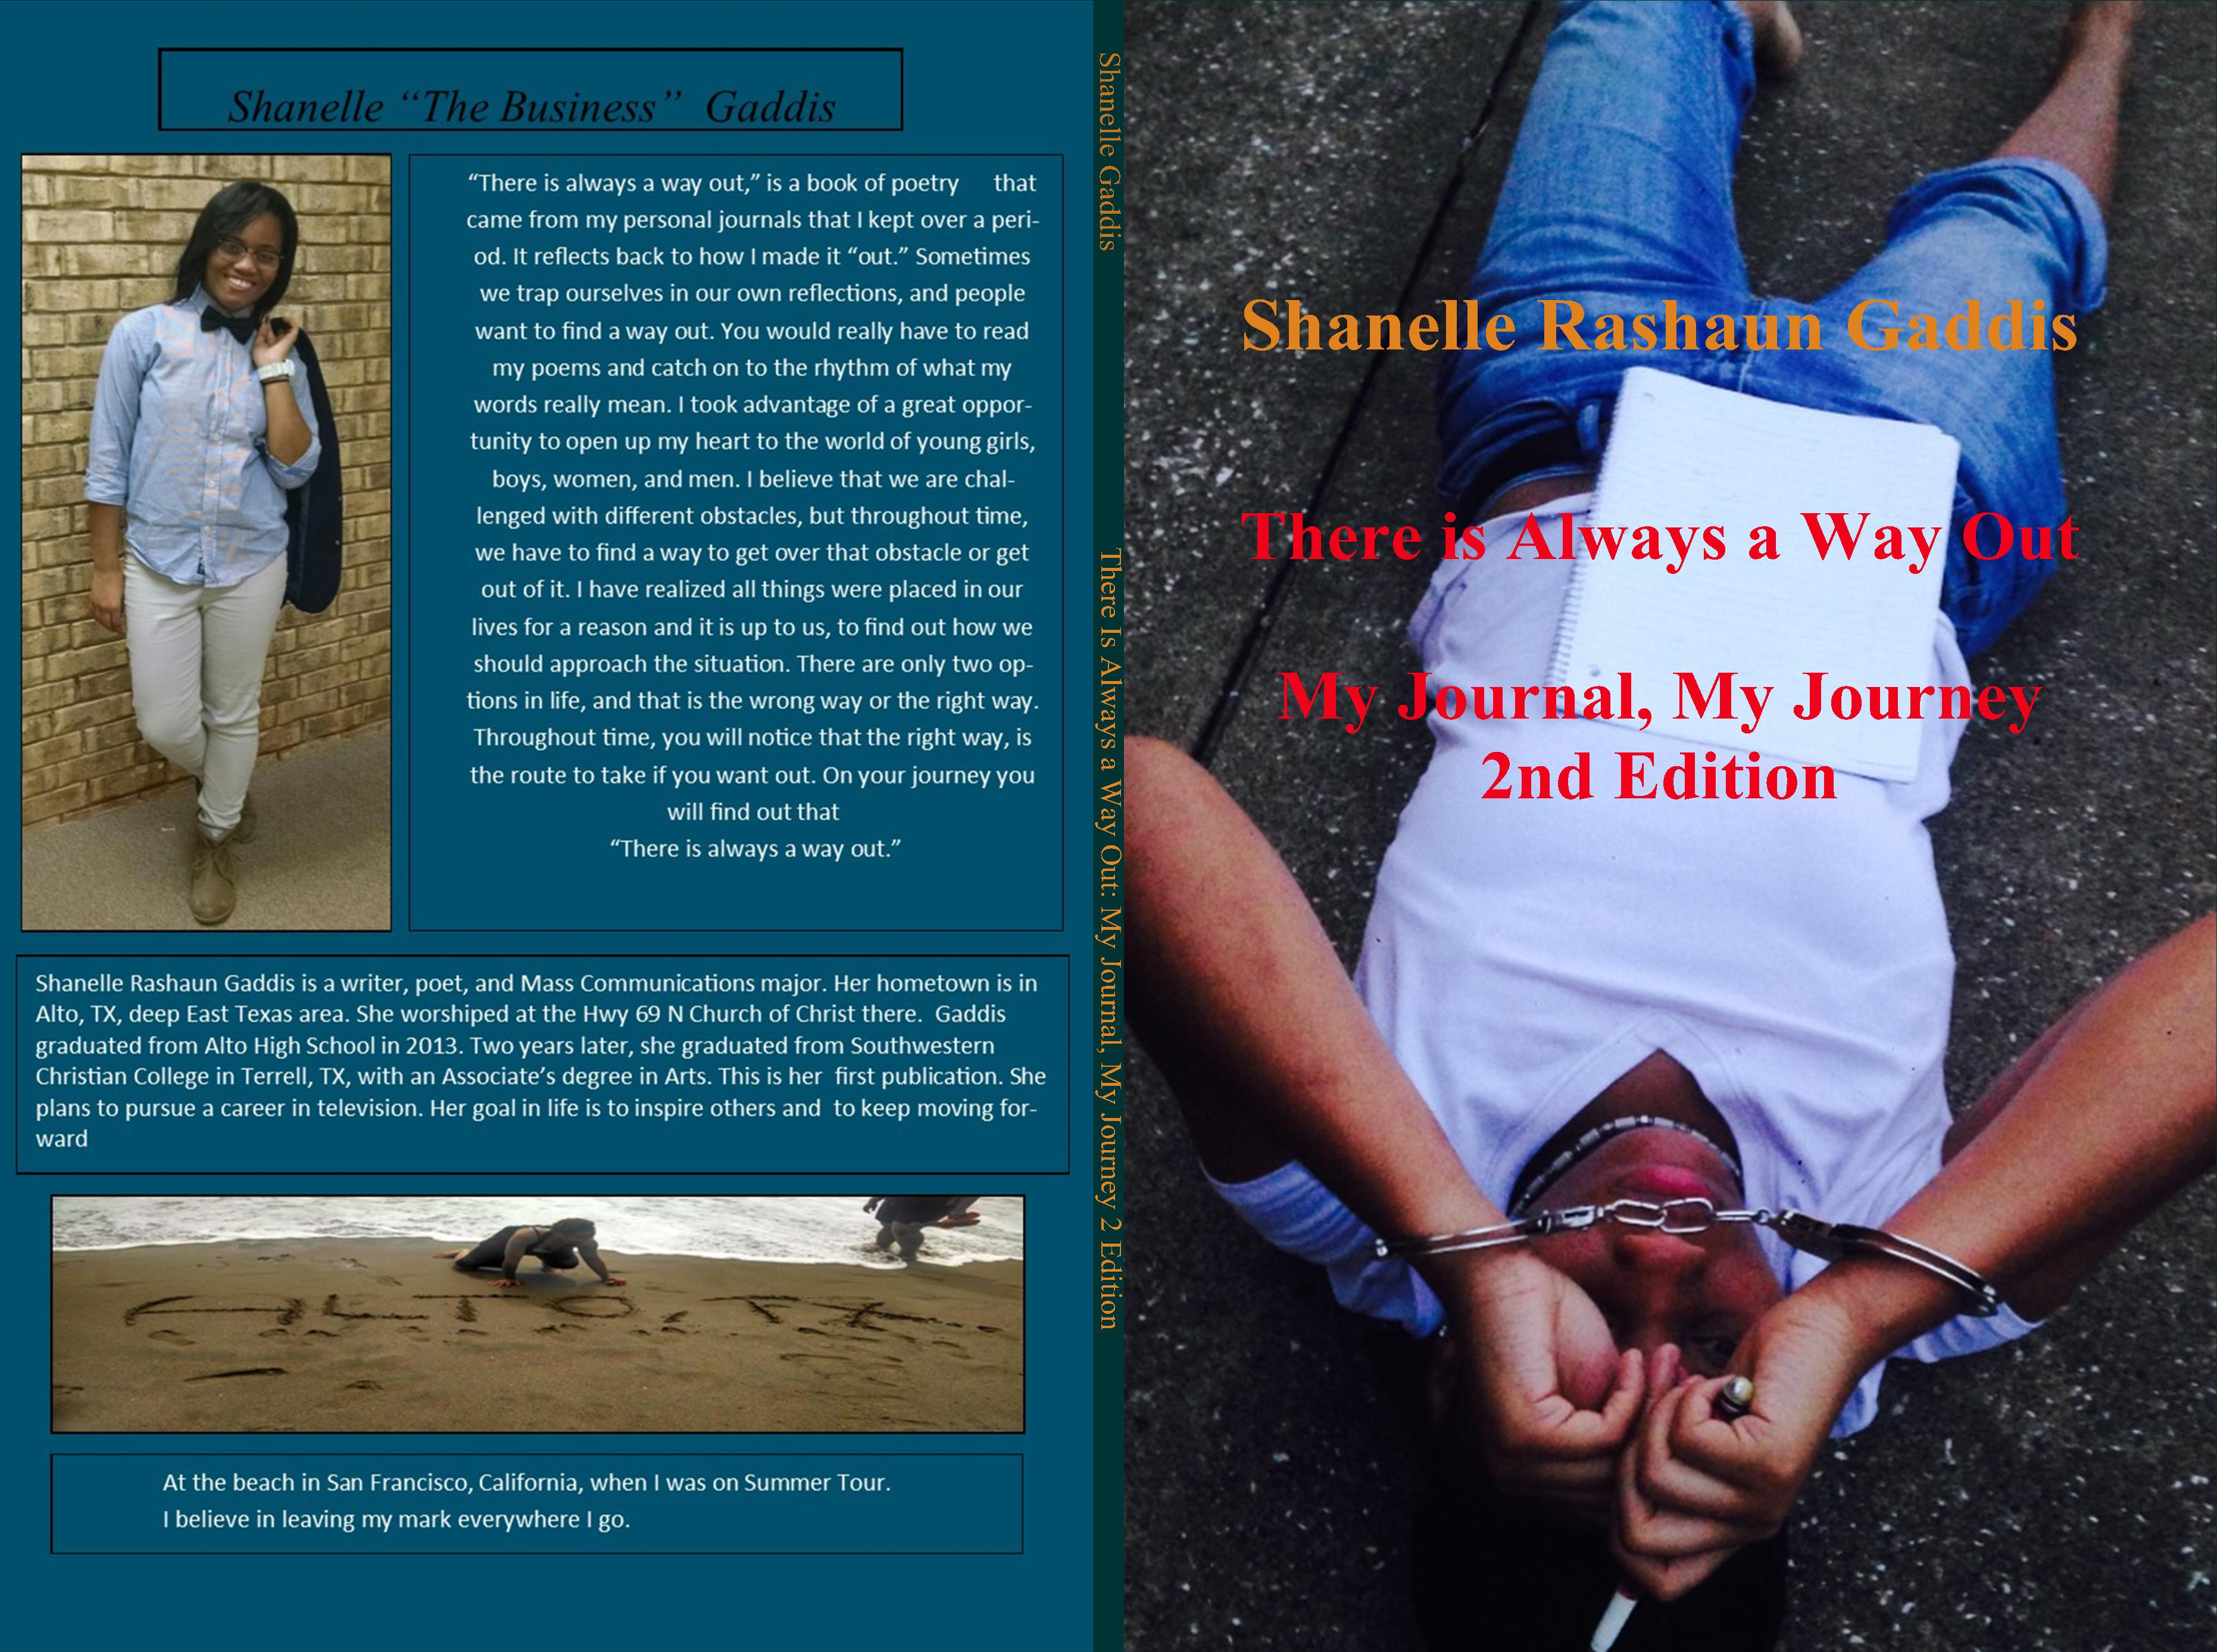 There is Always a Way Out My Journal, My Journey 2nd Edition cover image